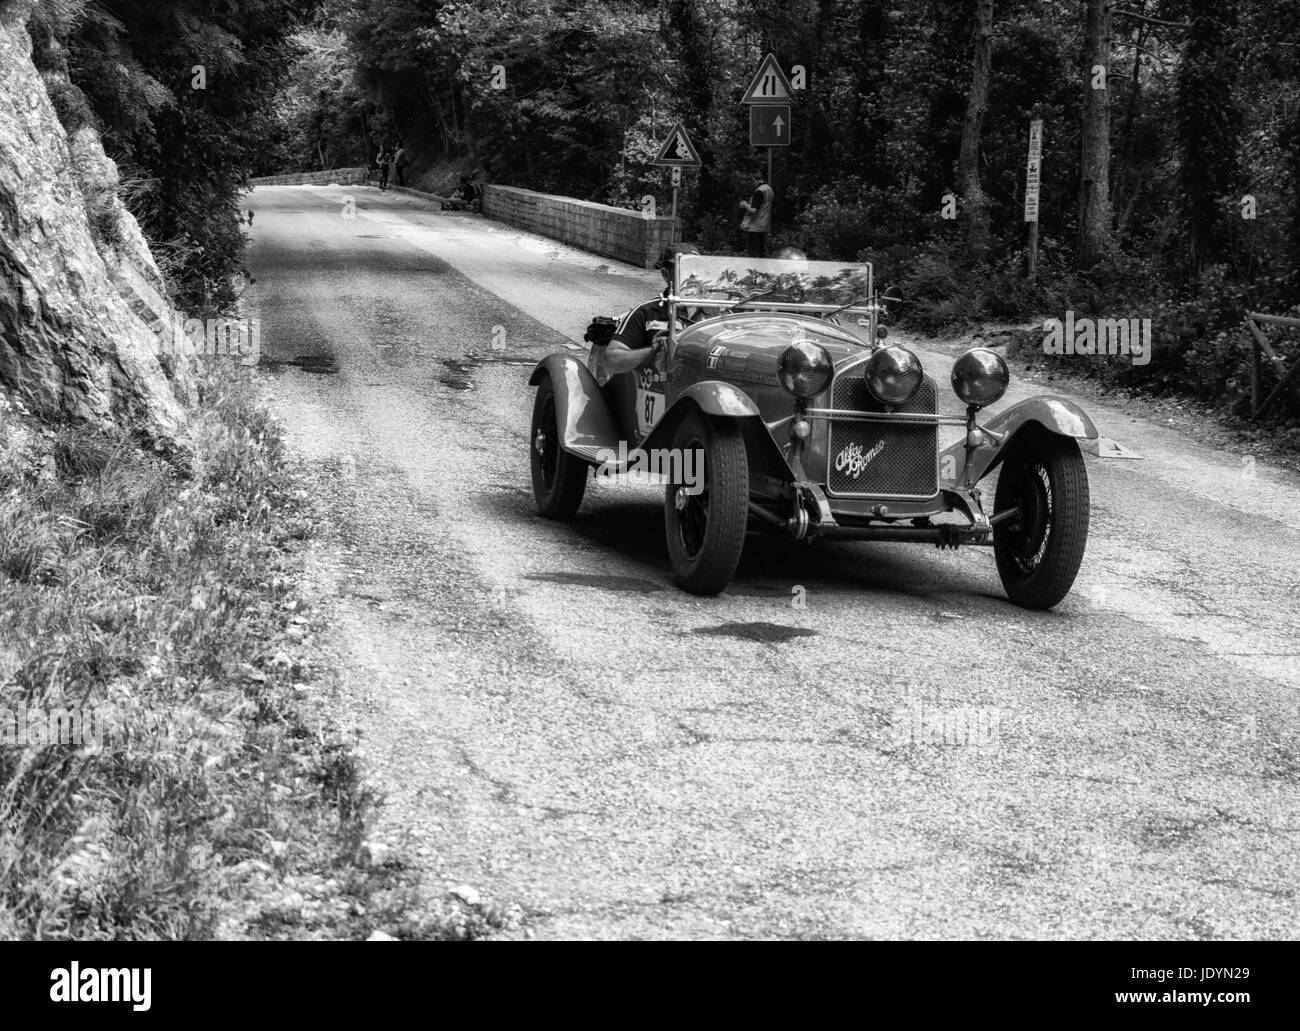 ALFA ROMEO 6C 1750 GRAN SPORT 1930 on an old racing car in rally ...